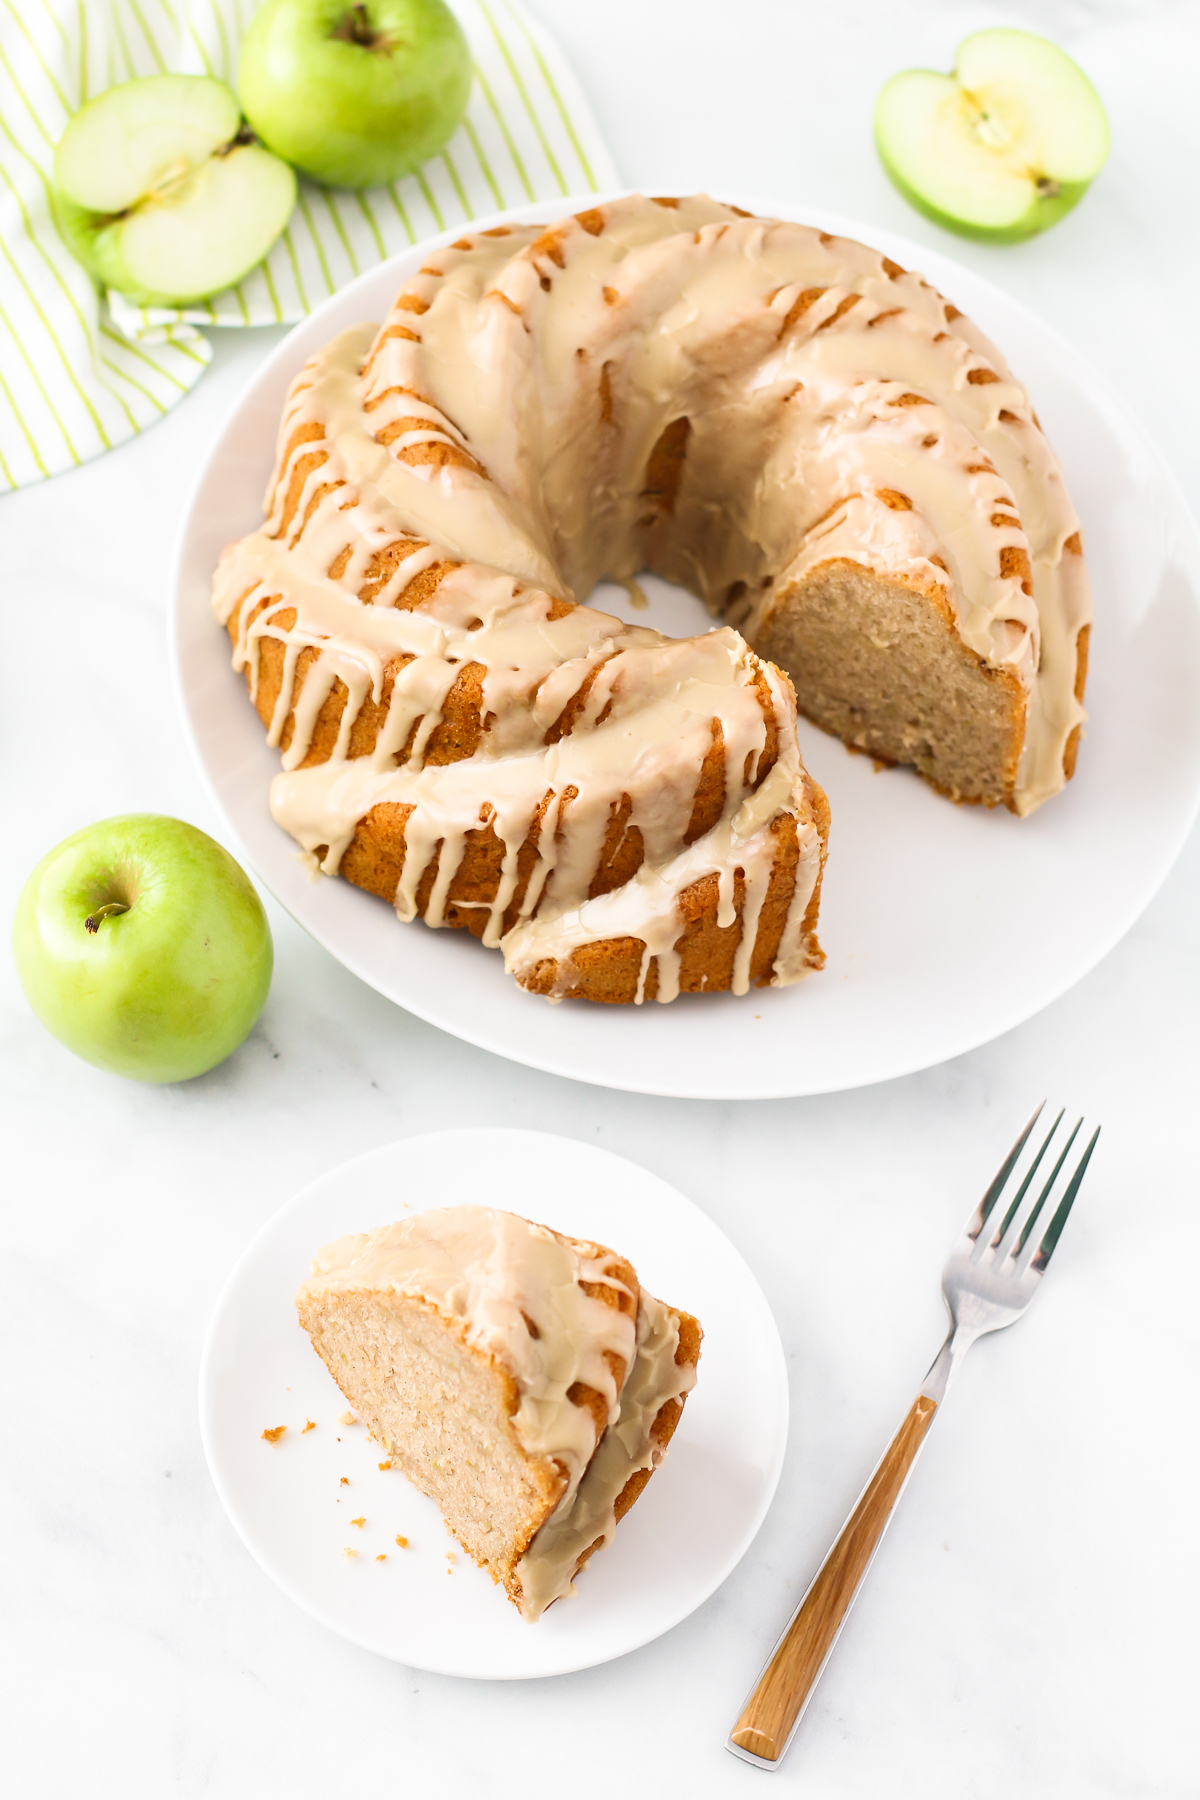 Gluten Free Vegan Caramel Apple Bundt Cake. This tender apple bundt cake, covered in a caramel glaze, makes for one stunning fall dessert!